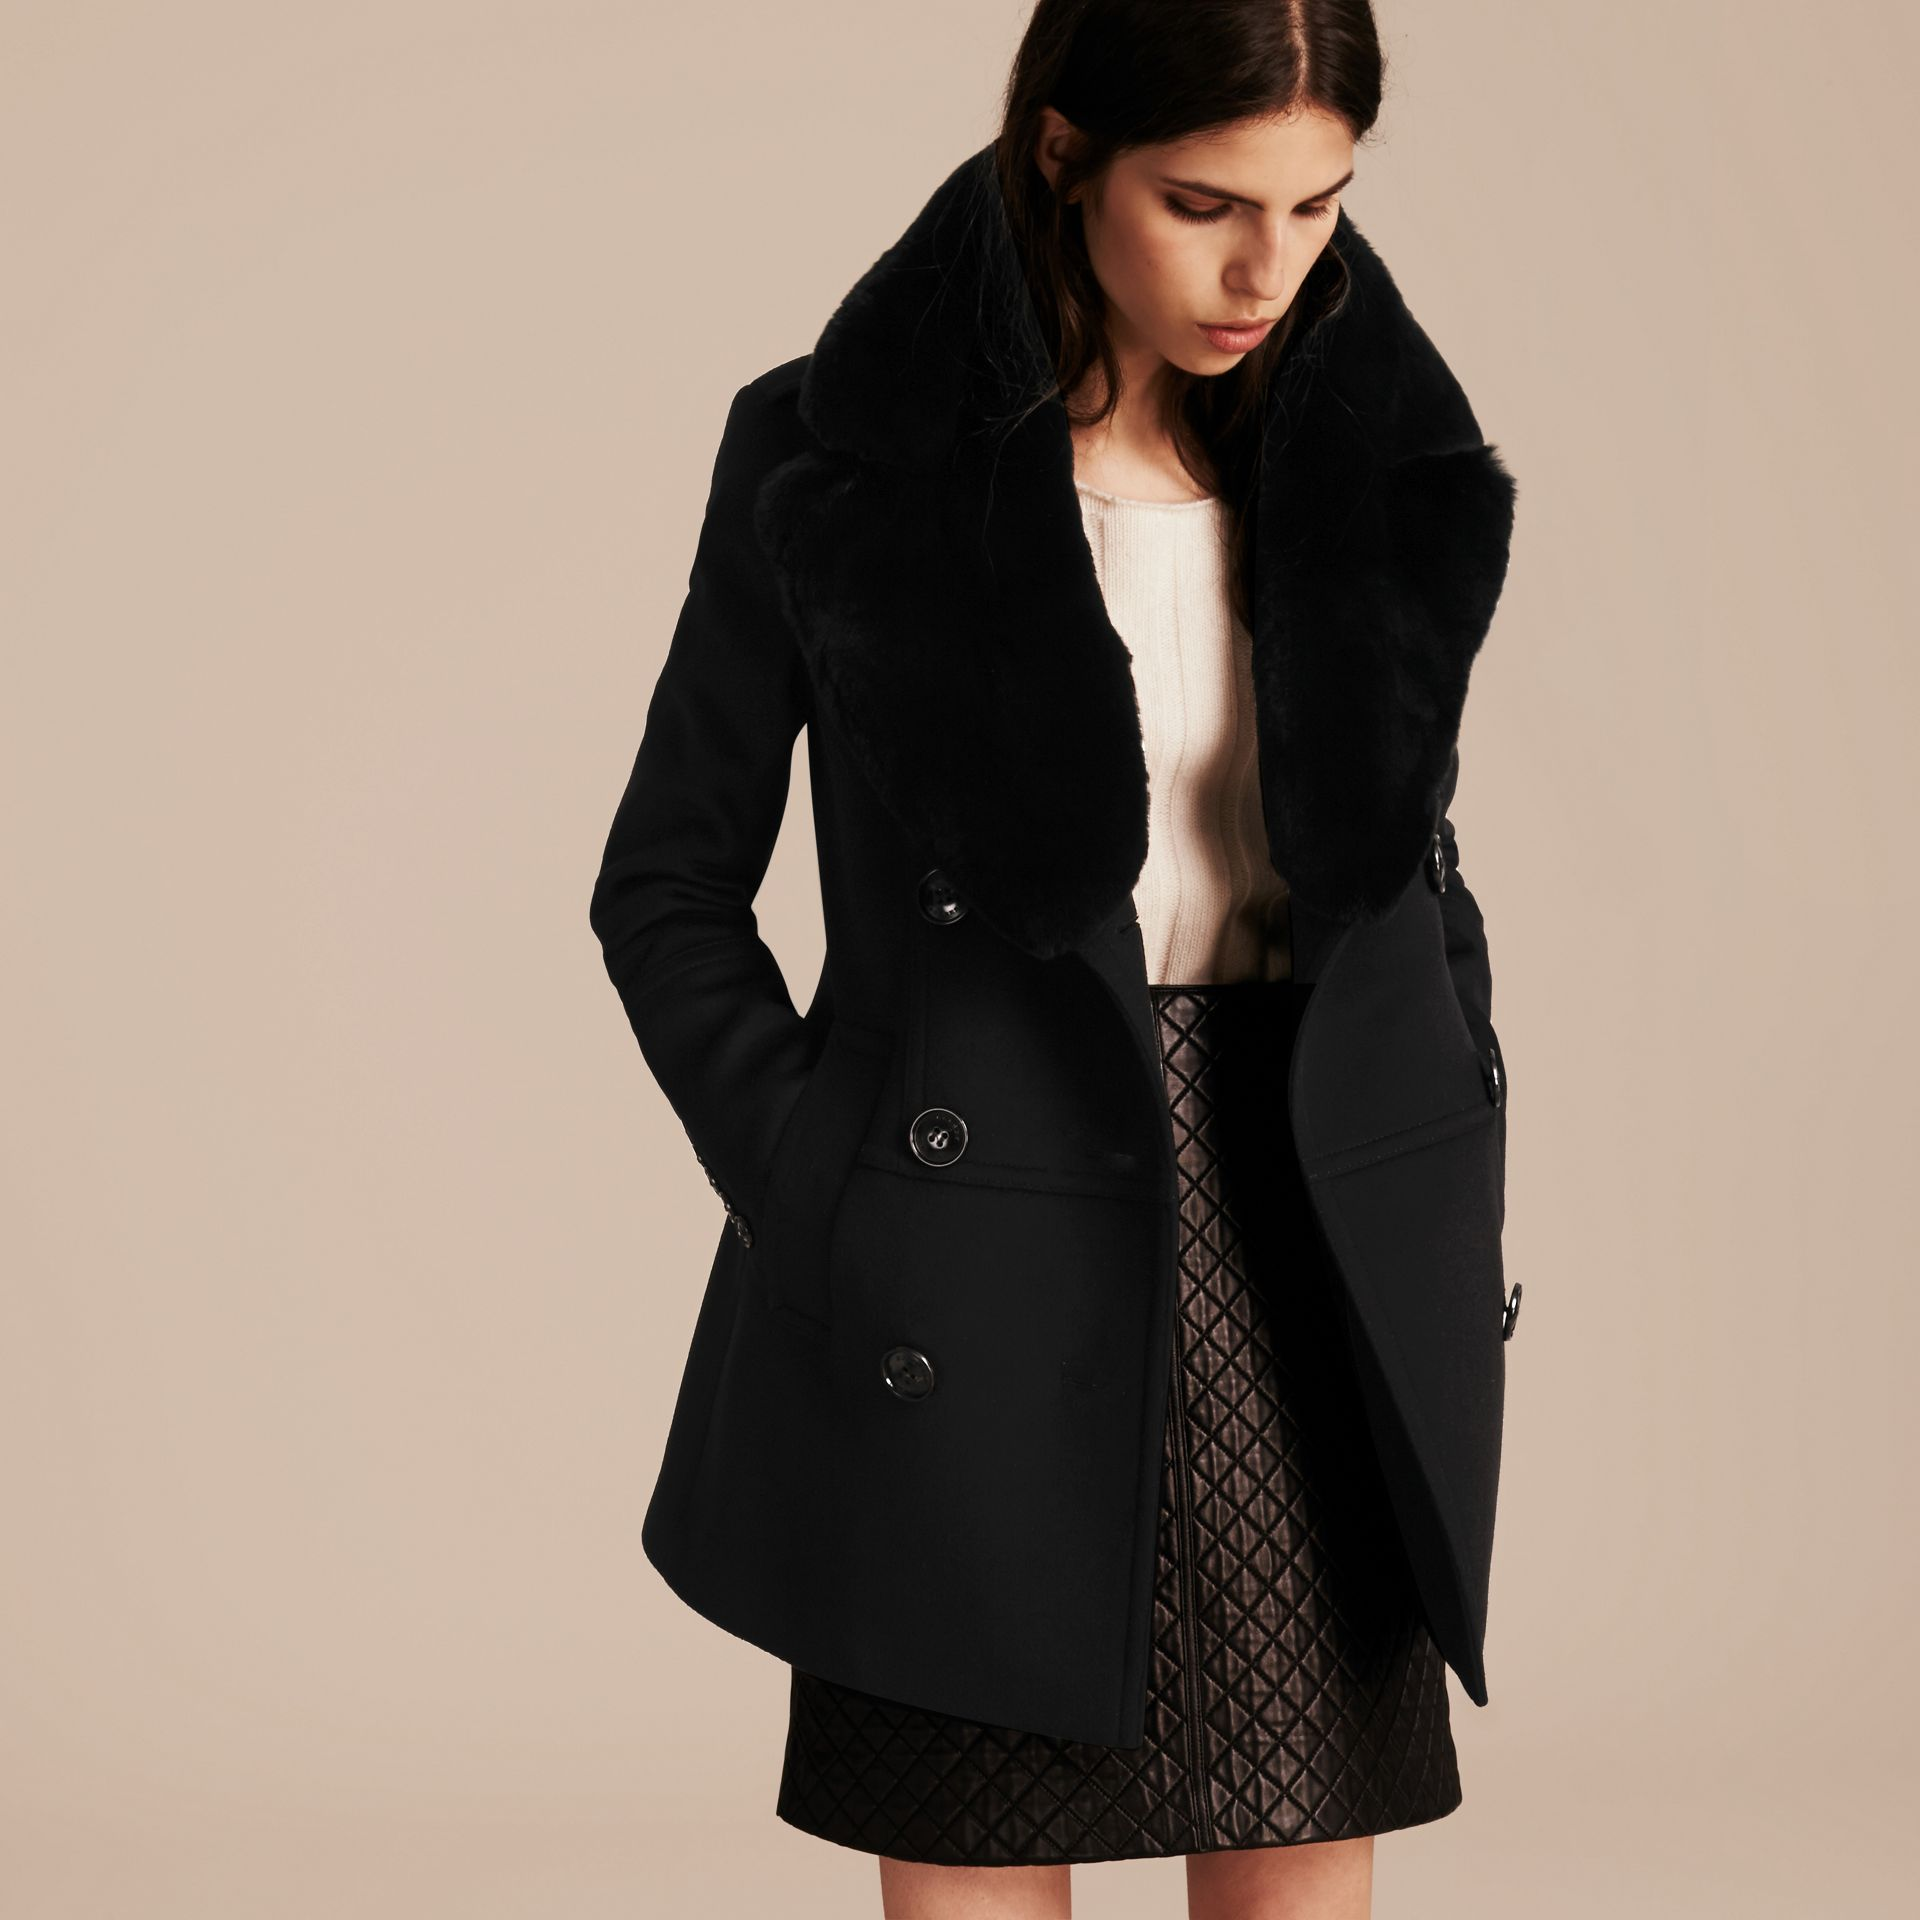 Black Wool Cashmere Pea Coat with Detachable Fur Collar - gallery image 7